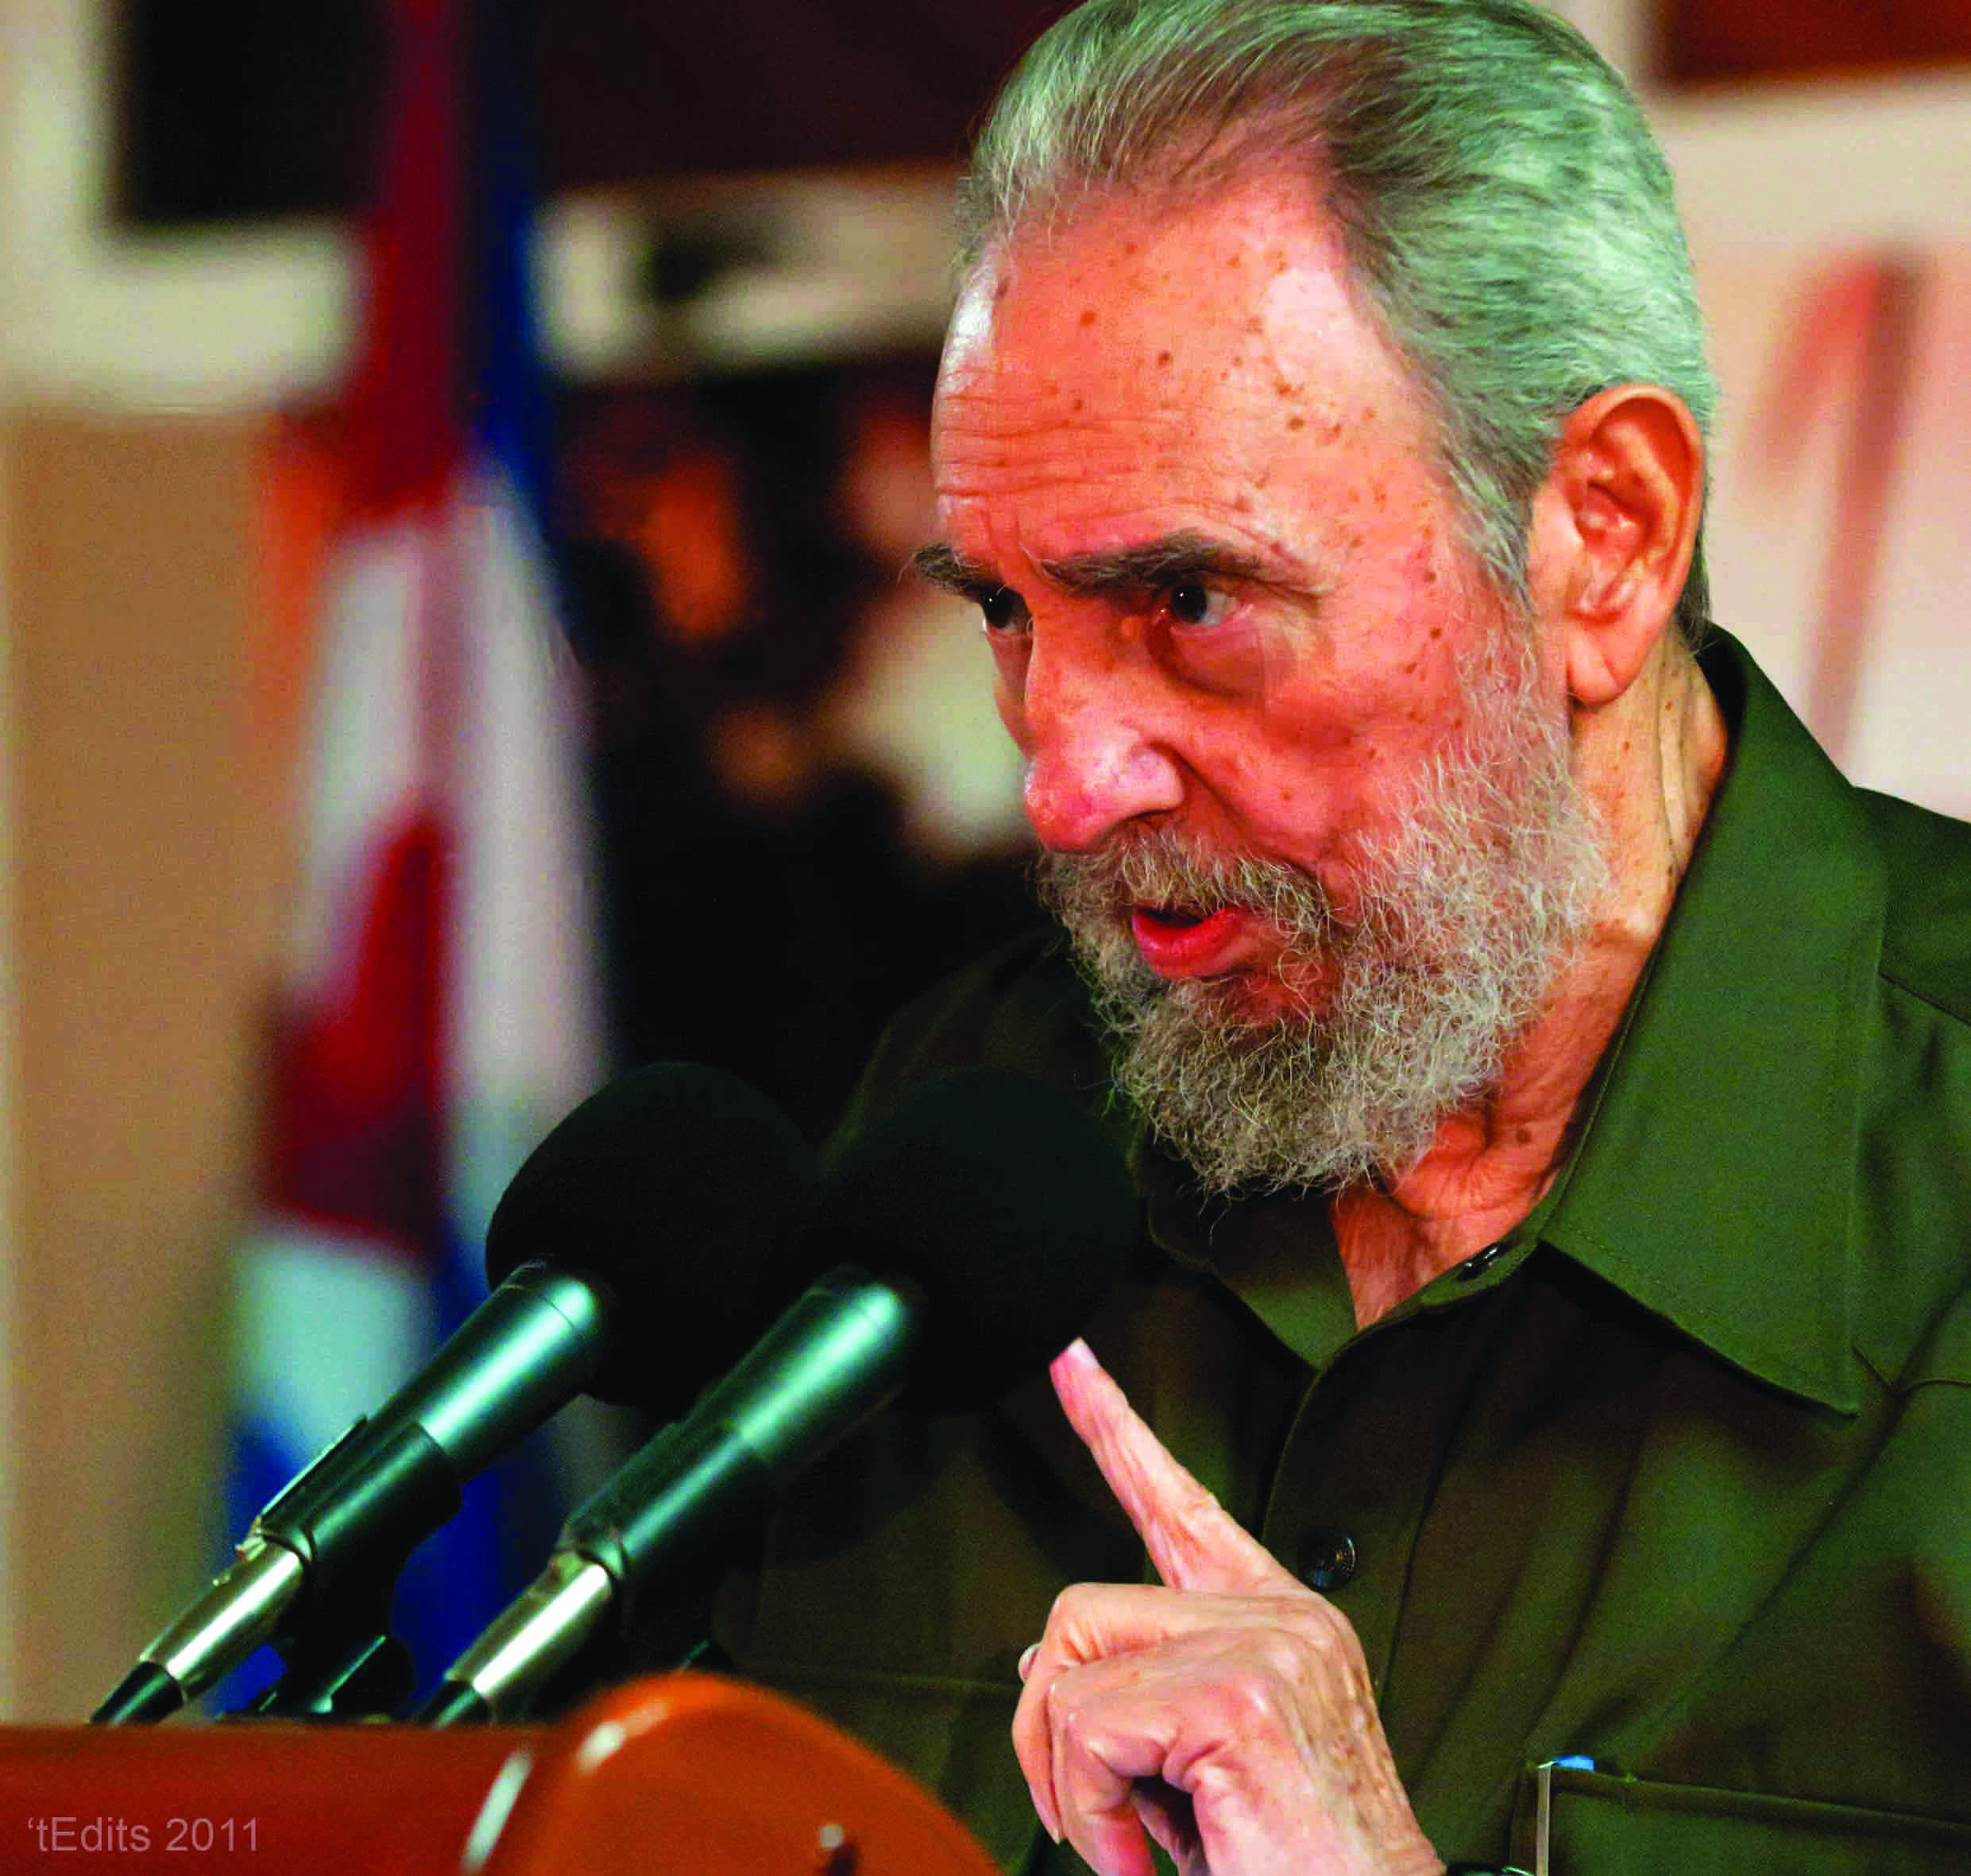 Since Fidel Castro's death last week, many have spoken out honoring his legacy. This praise ignores Castro's many civil rights violations during his rule in Cuba.